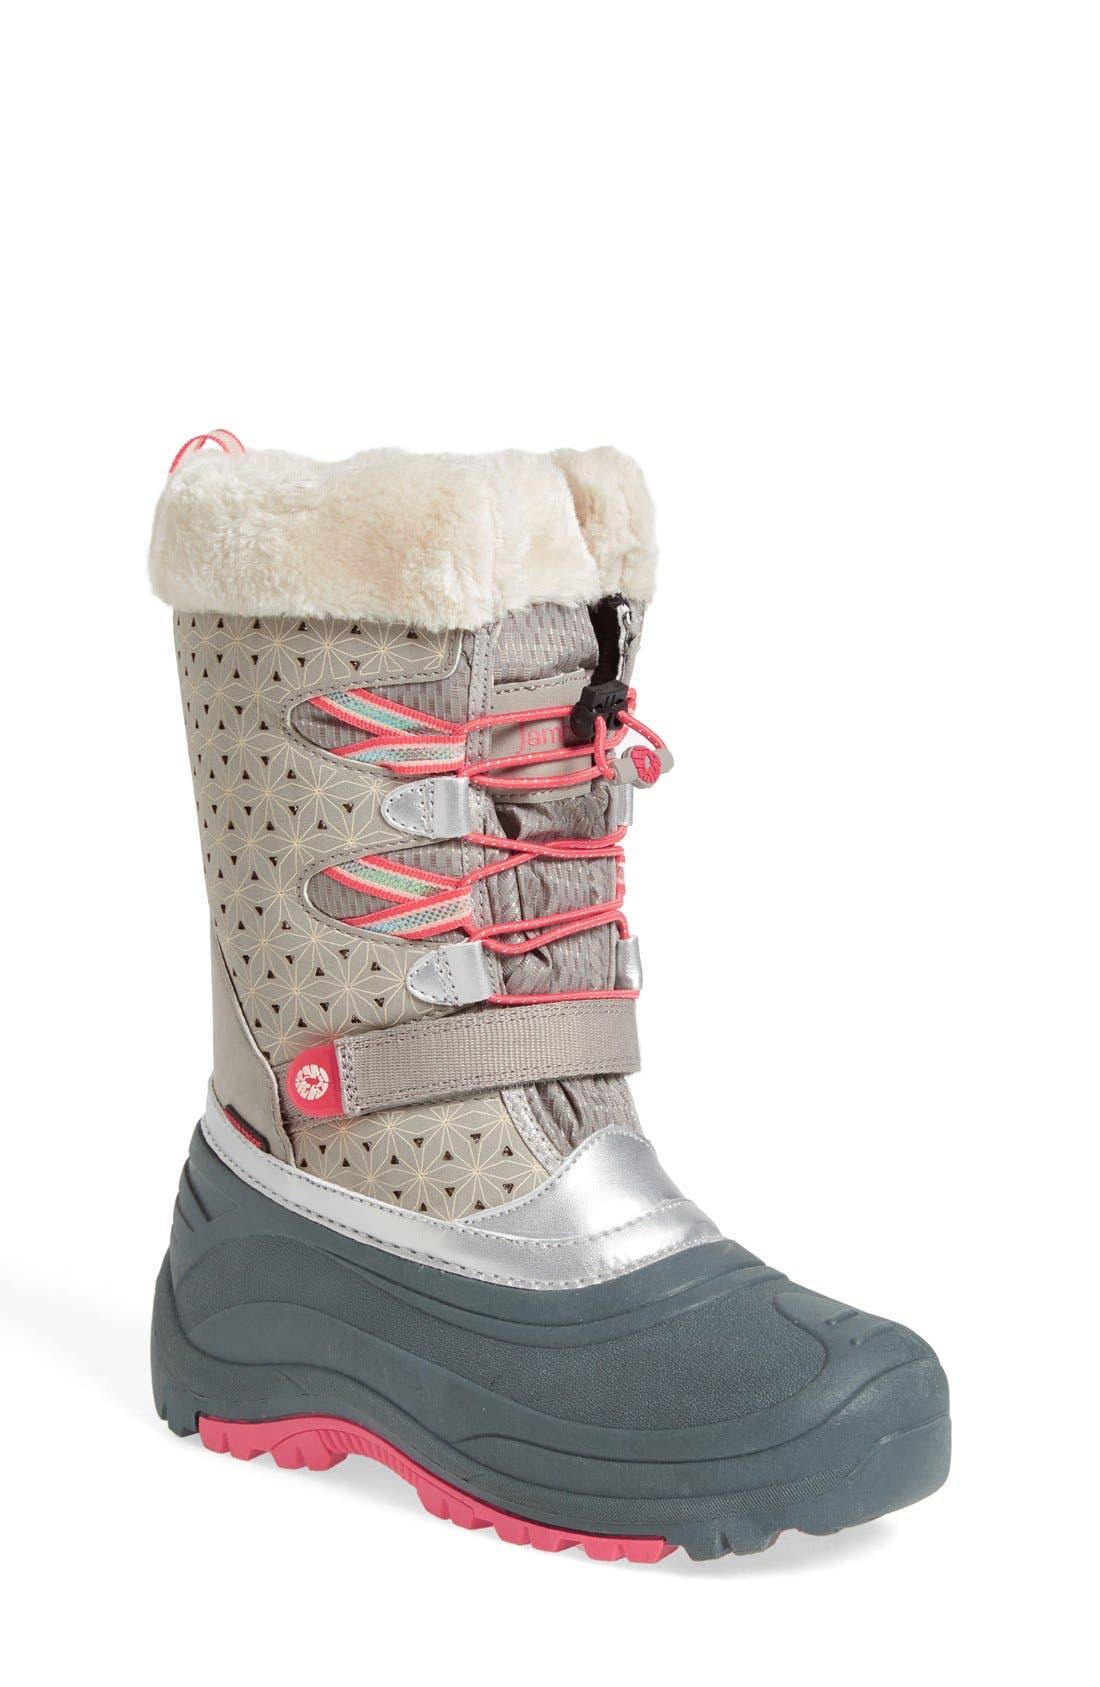 'Venom' Waterproof Insulated Snow Boot,                         Main,                         color,